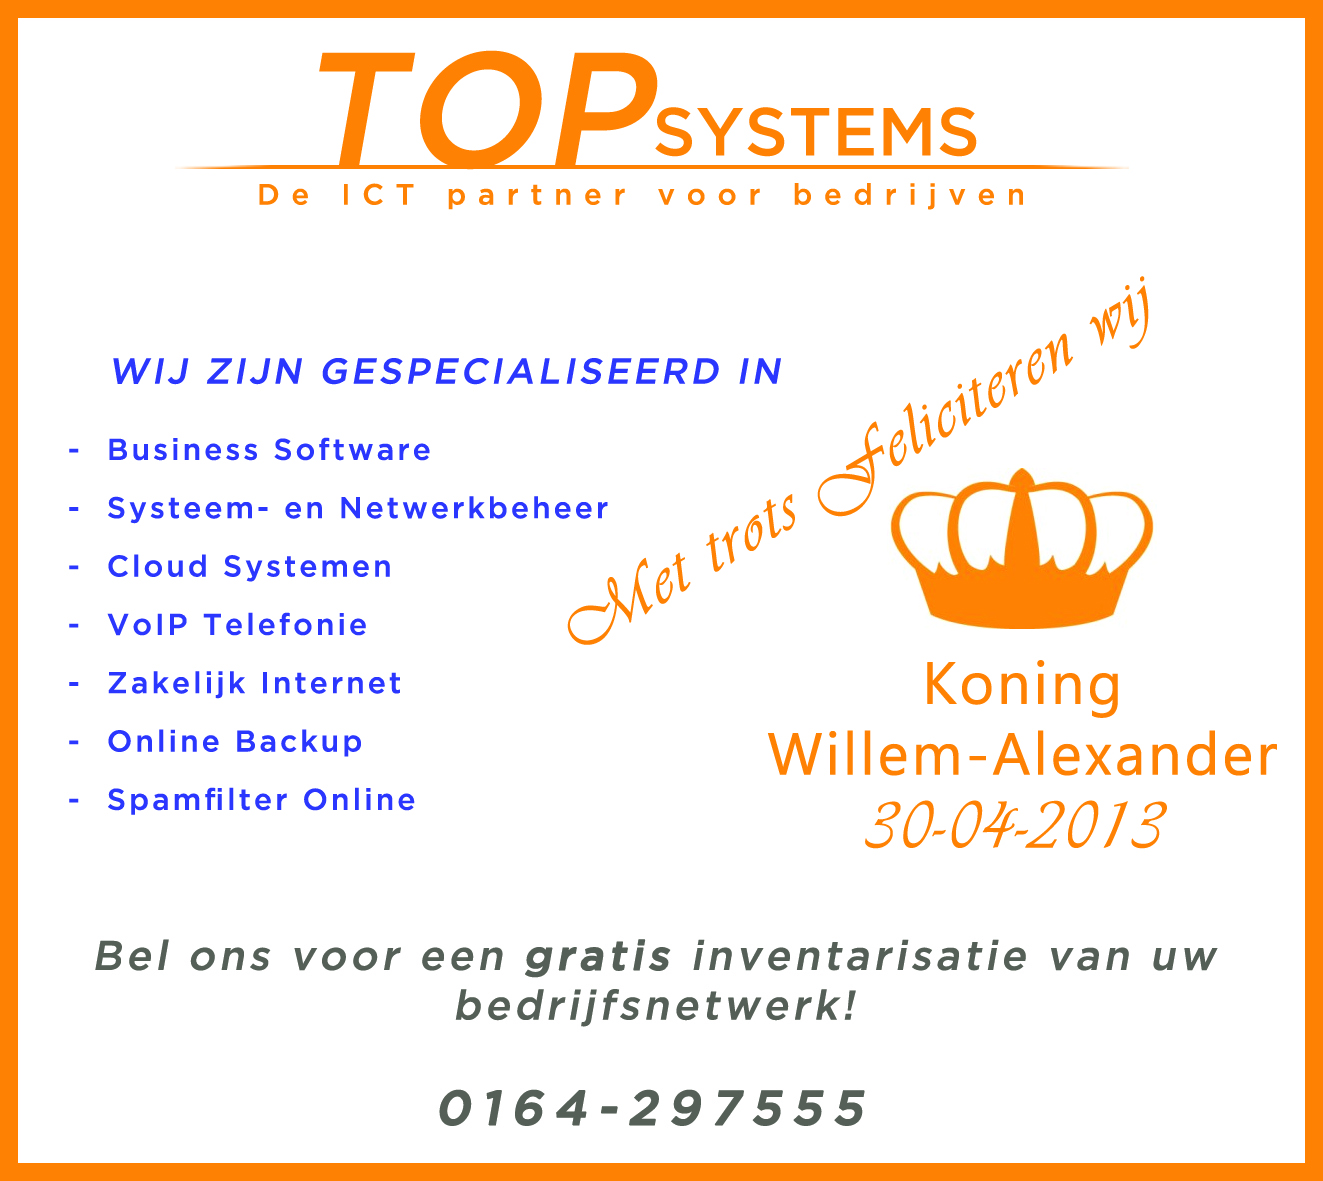 TOPSYSTEMS-groot-troonswisseling